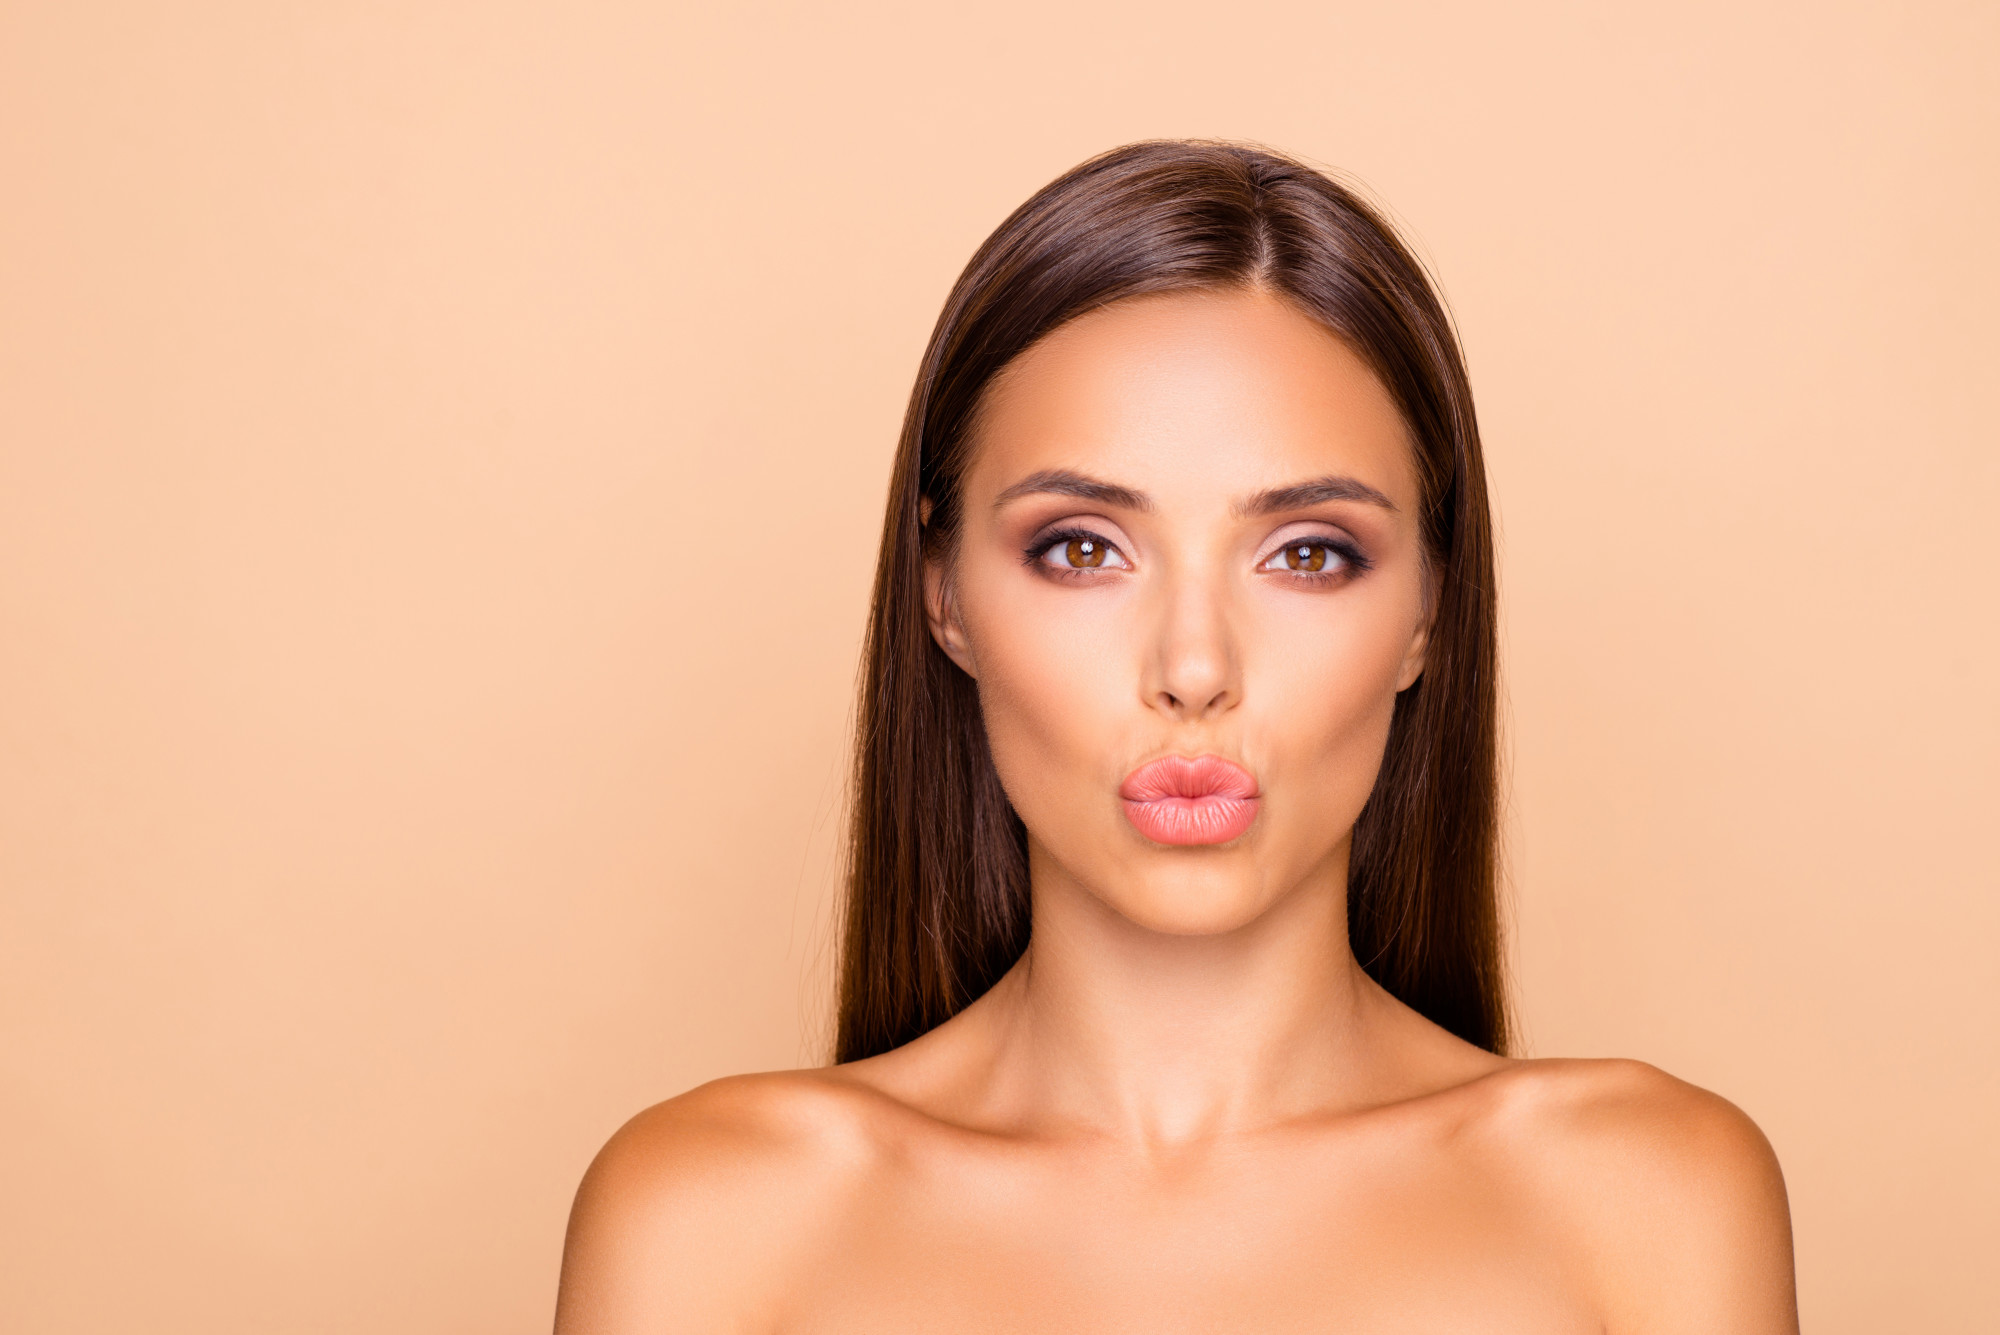 The Most Attractive Lip Shape Revealed